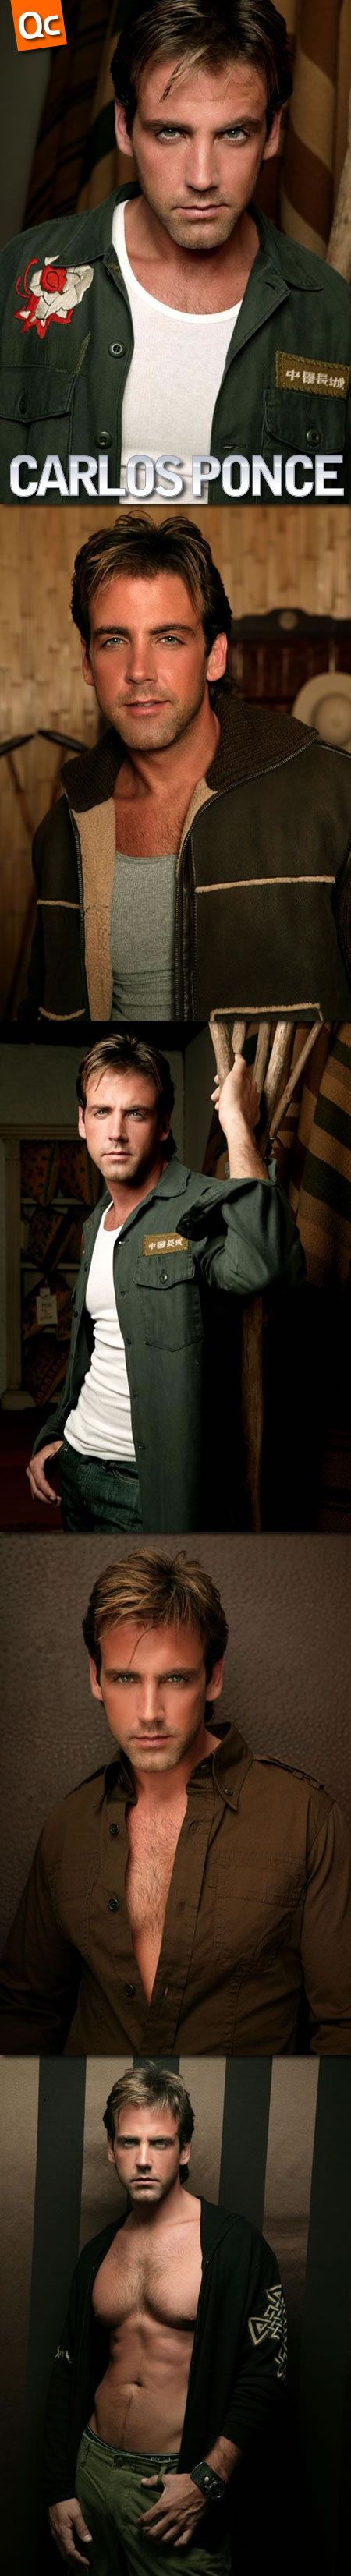 http://www.queerclick.com/espanol/images/2008/04/gd_carlos_ponce_my.jpg